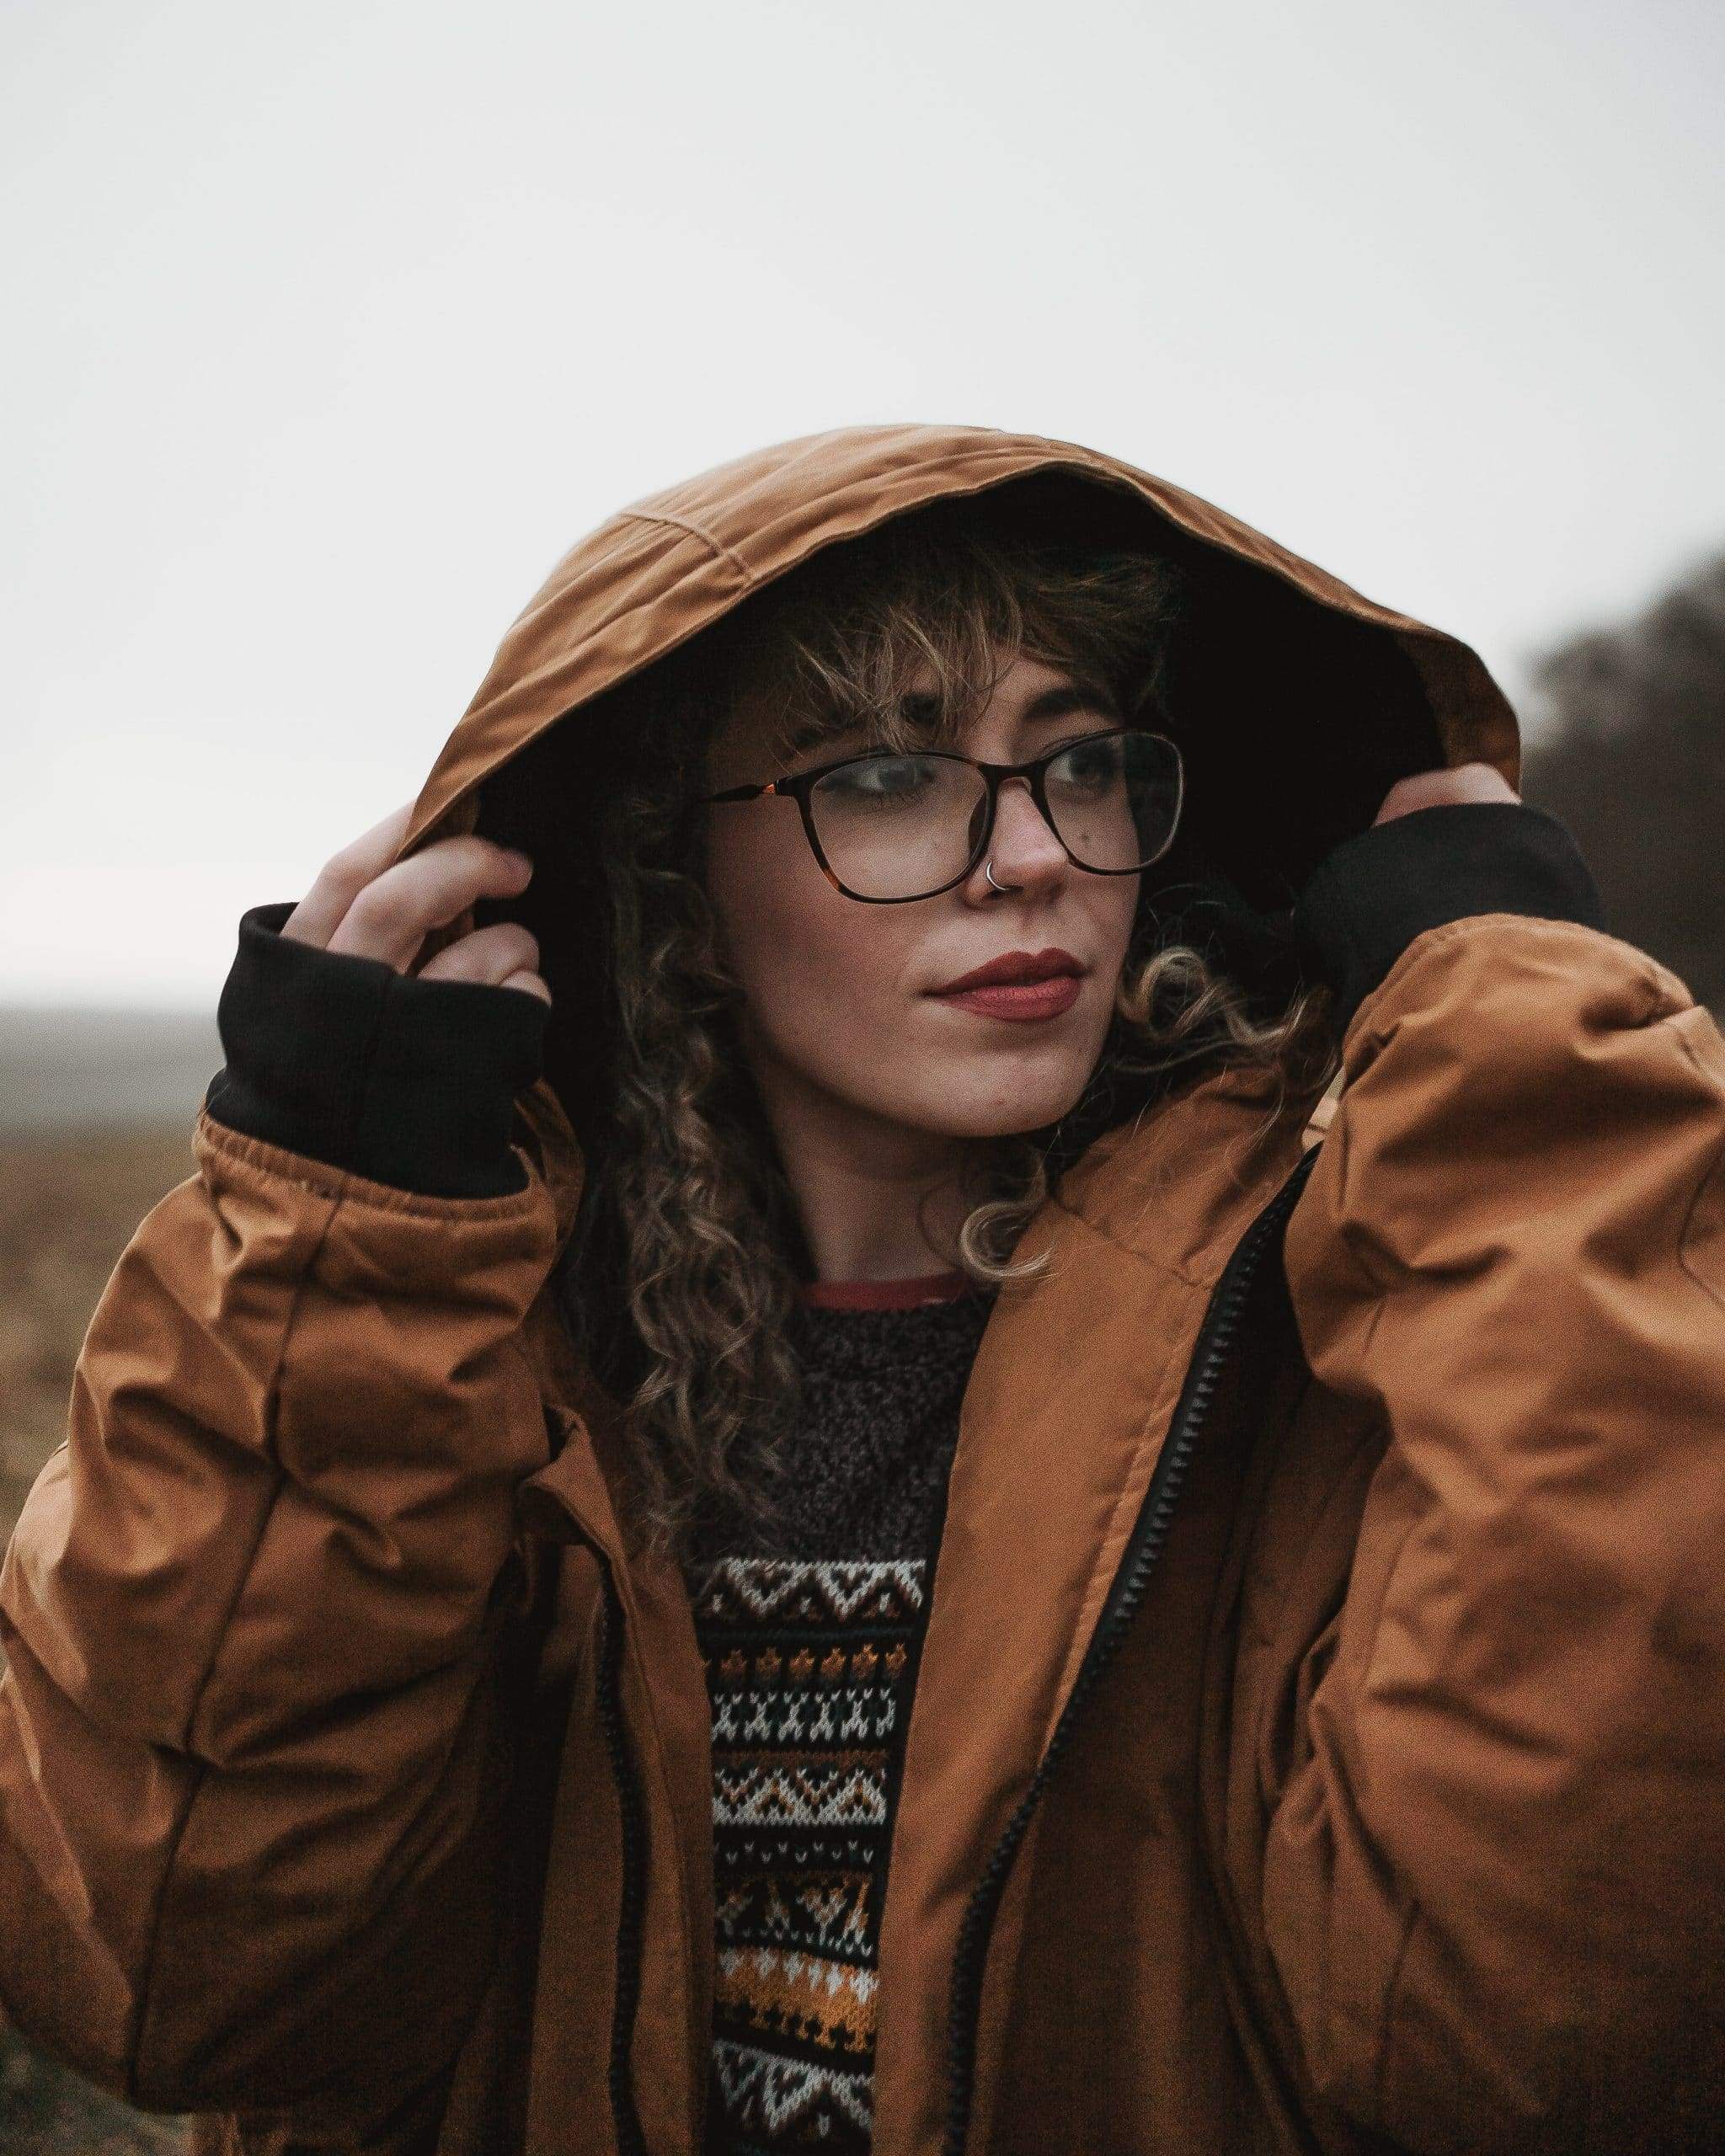 photo-of-woman-wearing-brown-jacket-3657429